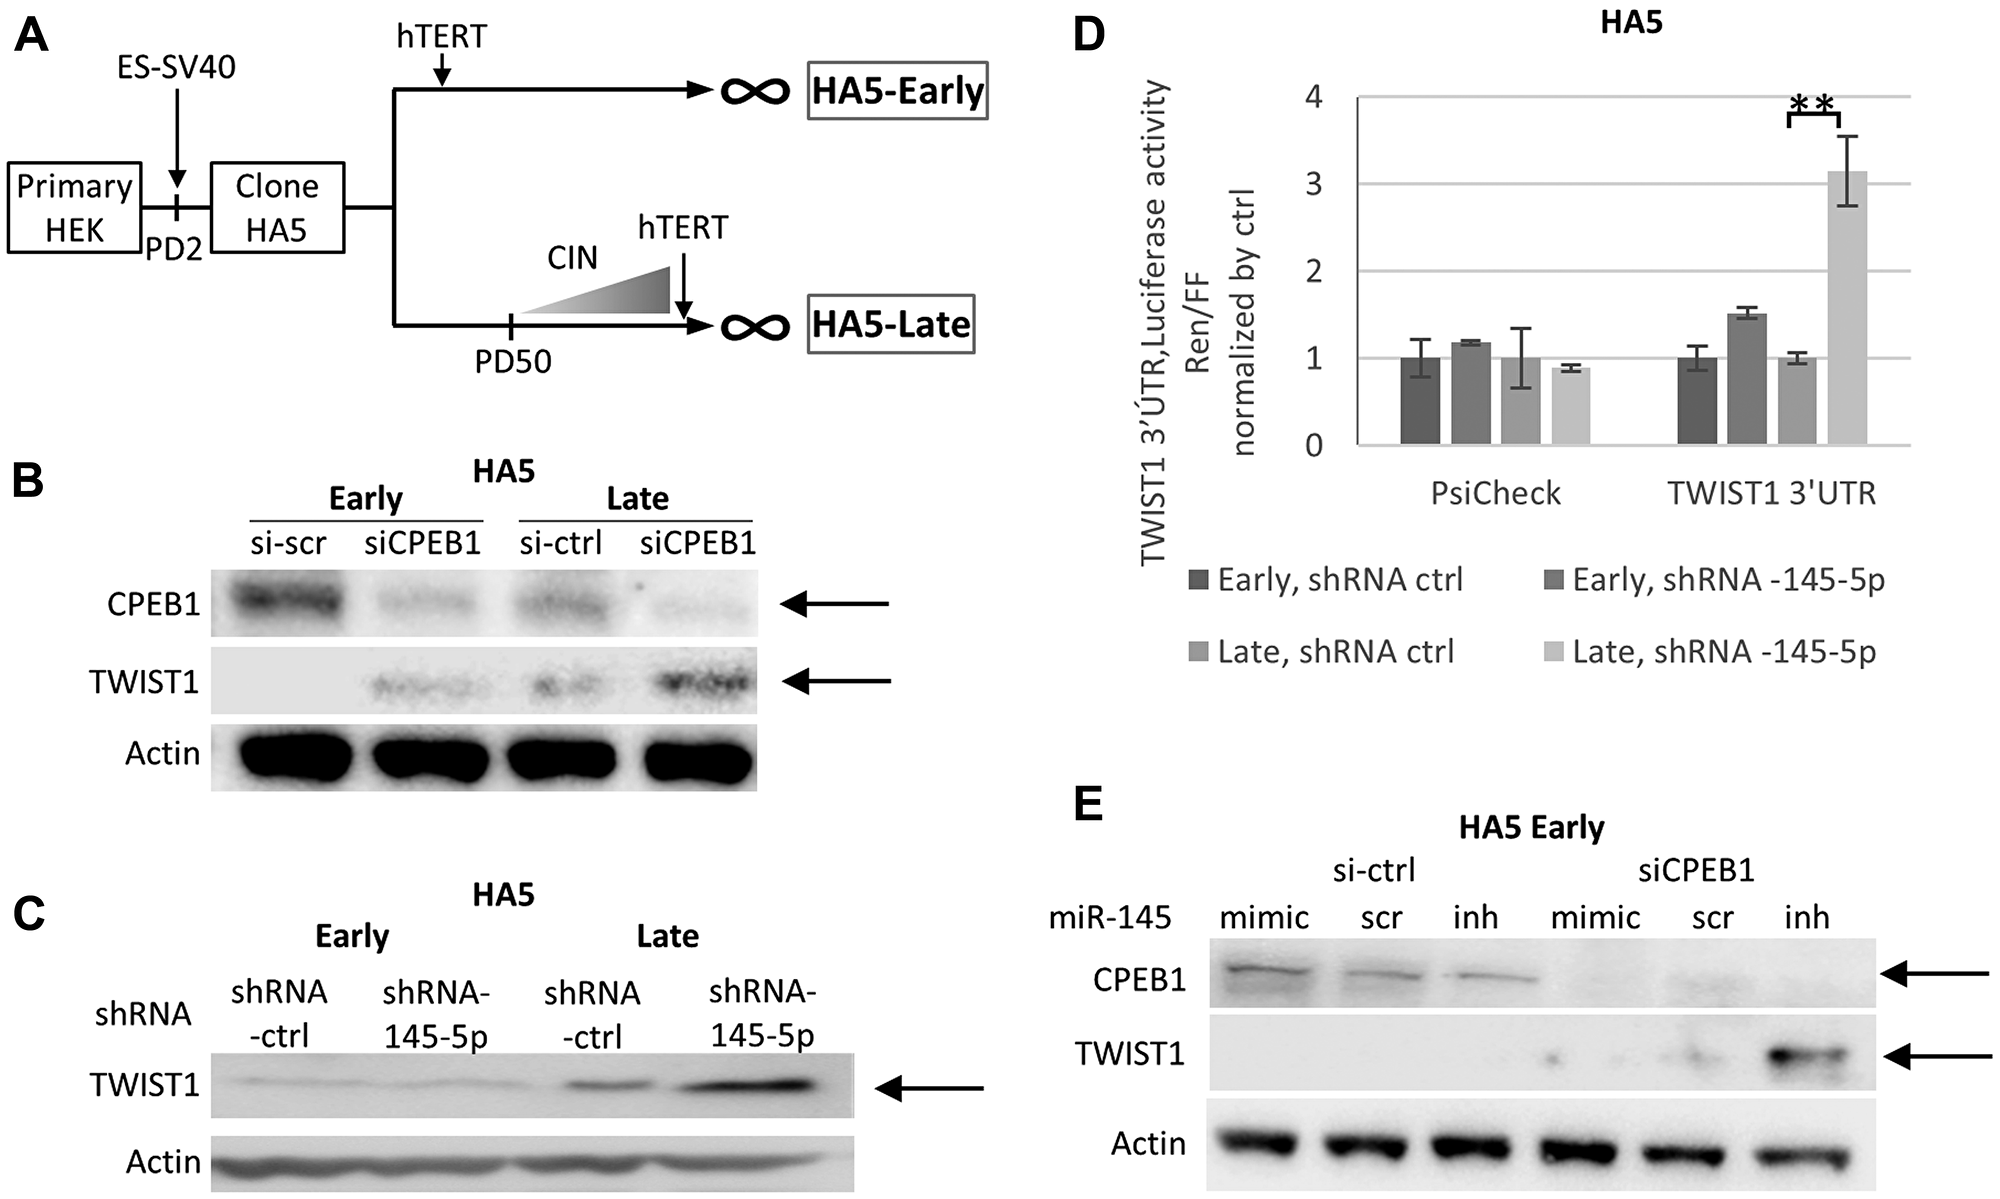 The CPEB1/Mir-145-5p interplay controls TWIST1 expression during telomere shortening in HEK cells.